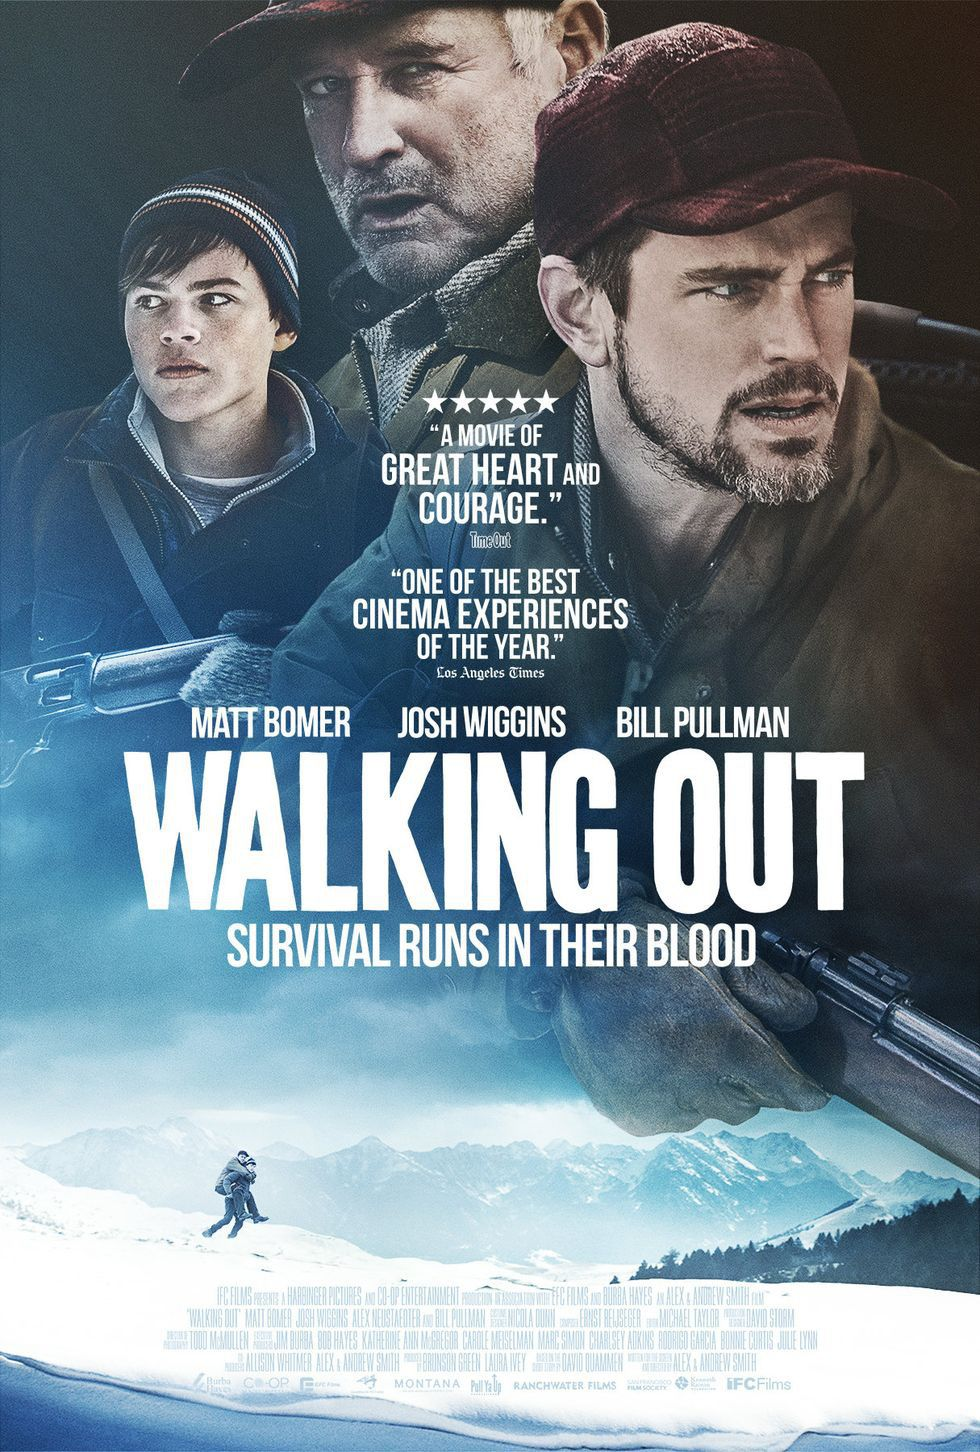 Walking Out - Matt Bomer - Josh Wiggins - Bill Pullman - film poster